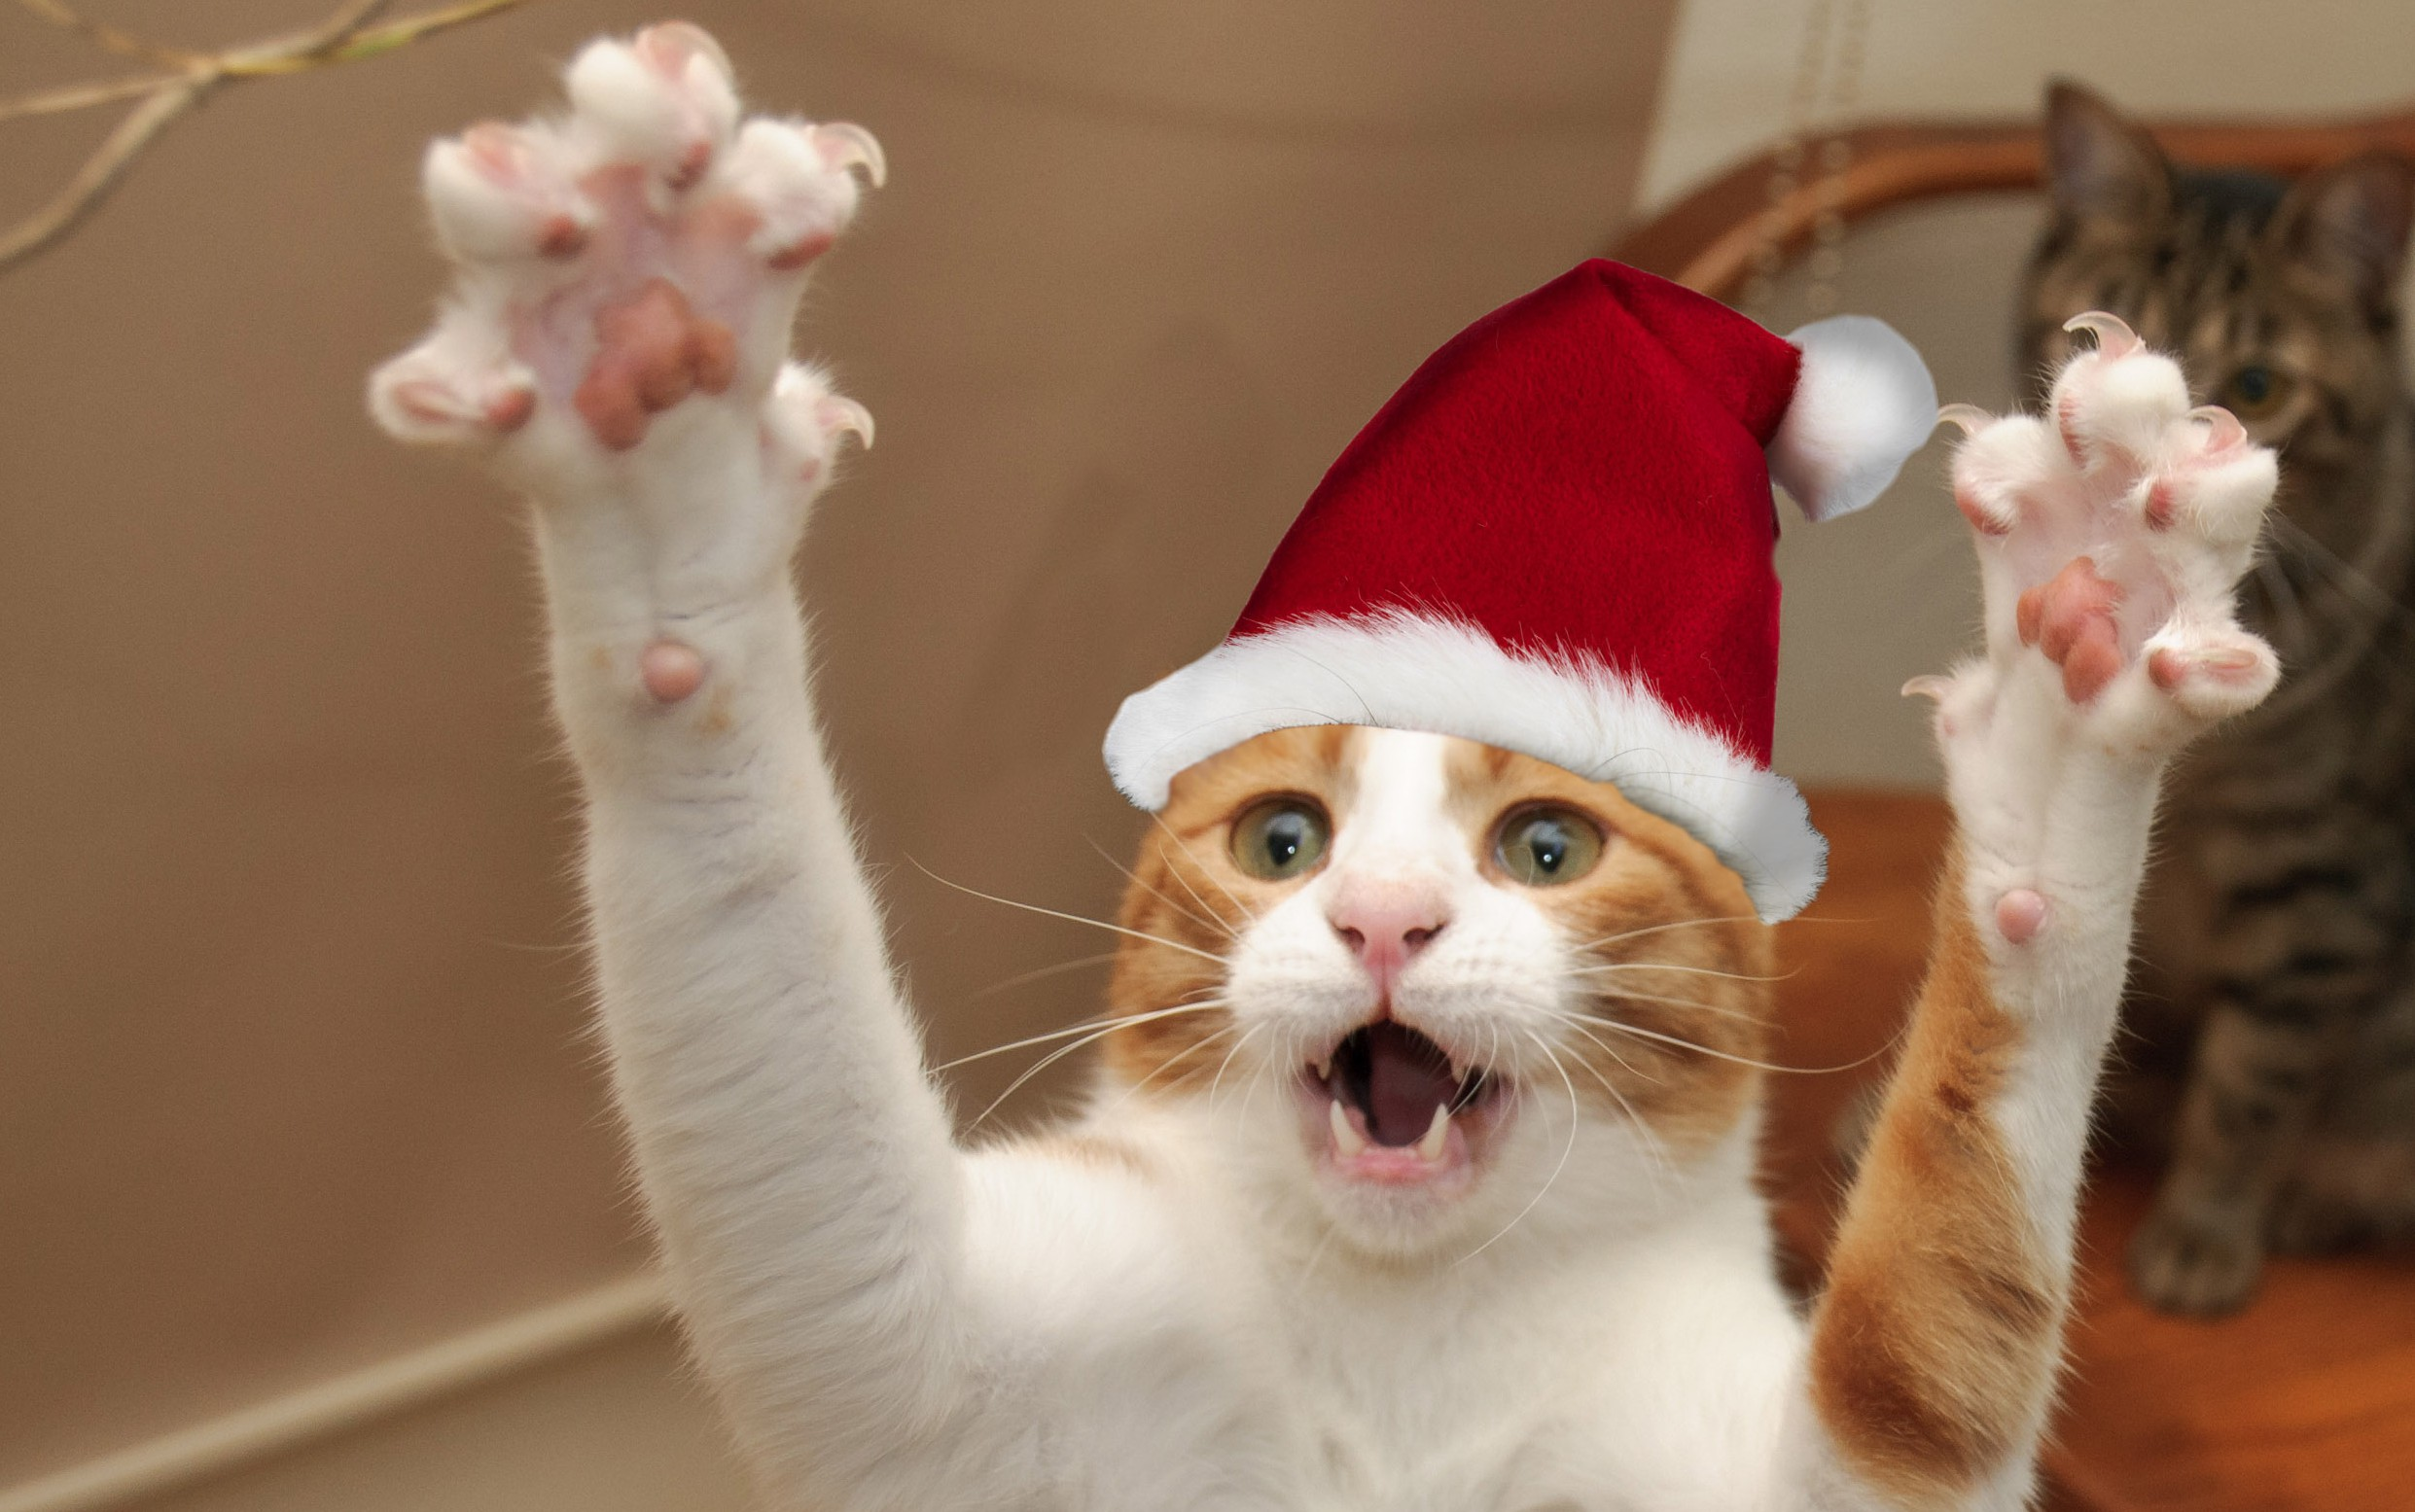 15 of the weirdest Christmas traditions from around the globe